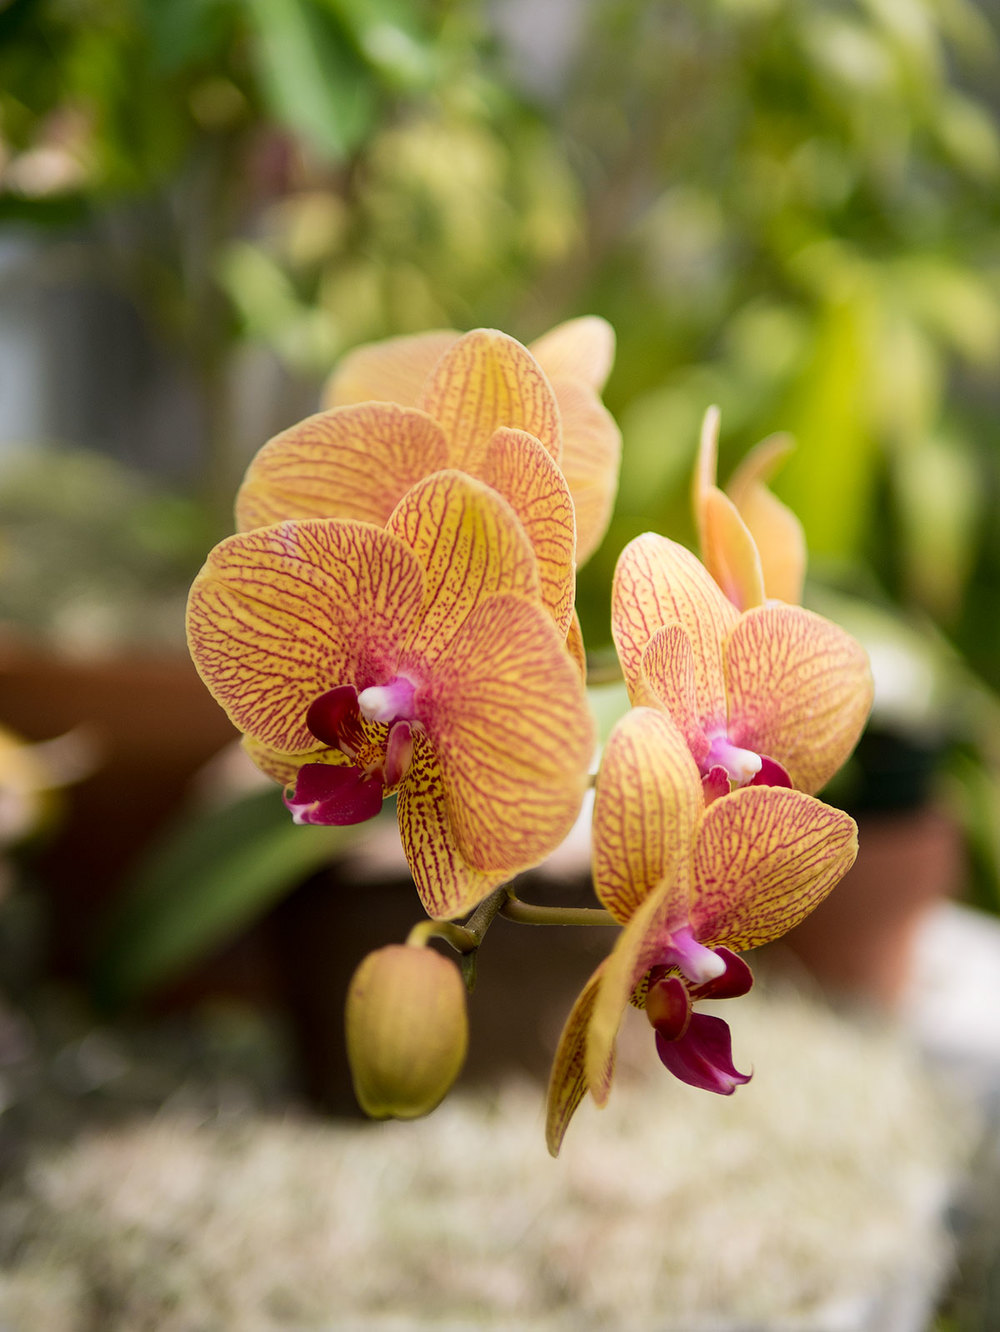 Orchid Range: Duke Farm, NJ